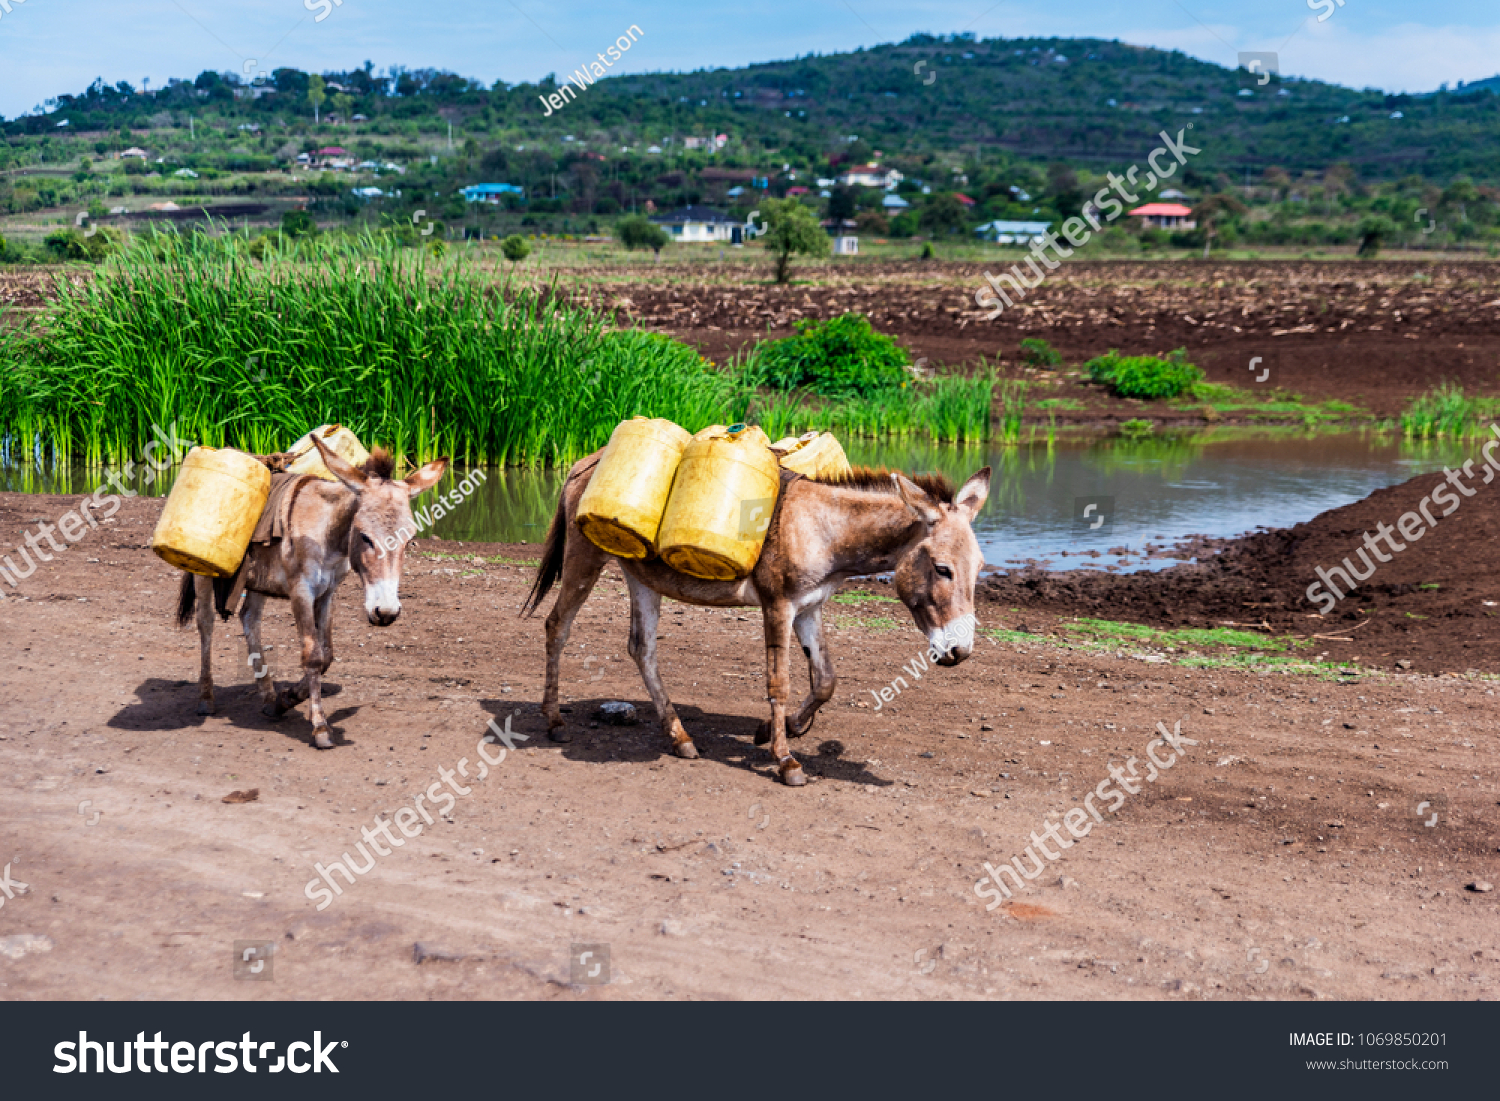 Two donkeys walking along dirt road in rural Kenya. They are fitted with harnesses and transporting panniers filled with stream water for a building site. Rural scene. #1069850201